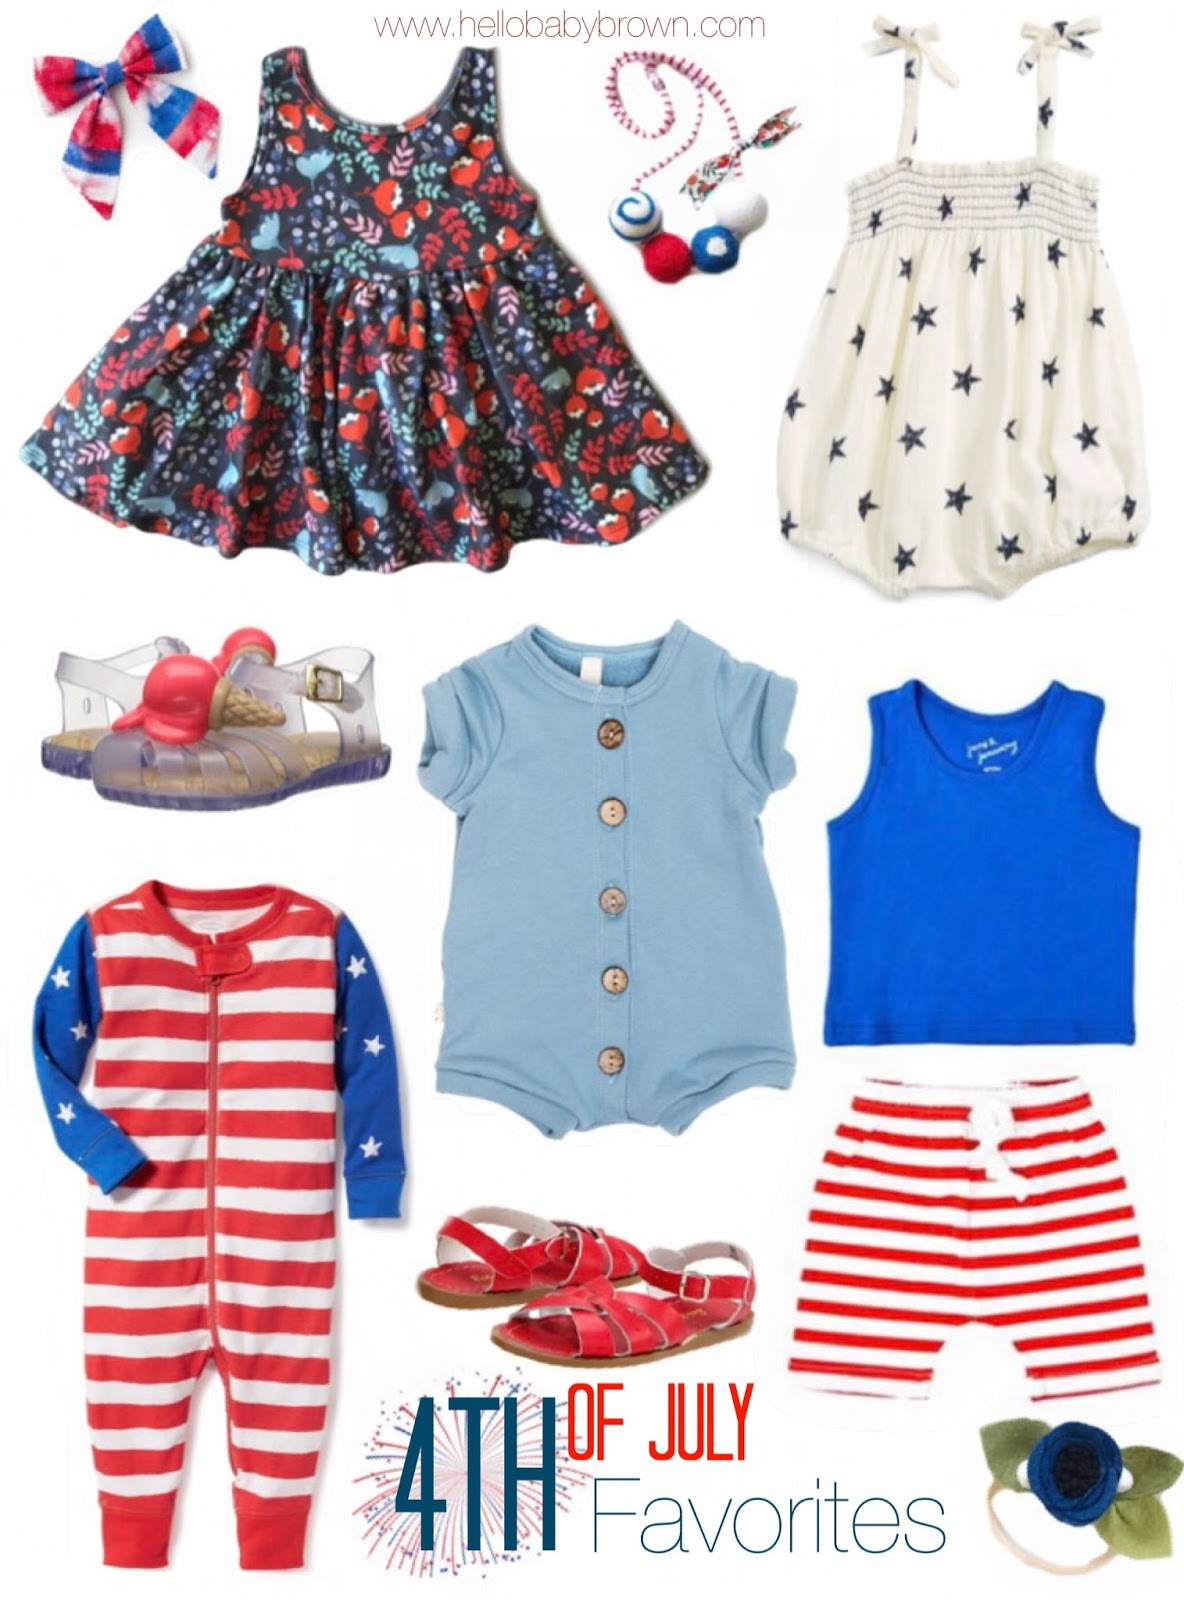 f7bc74bbe312 Hello Baby Brown  Fourth of July Favorites!